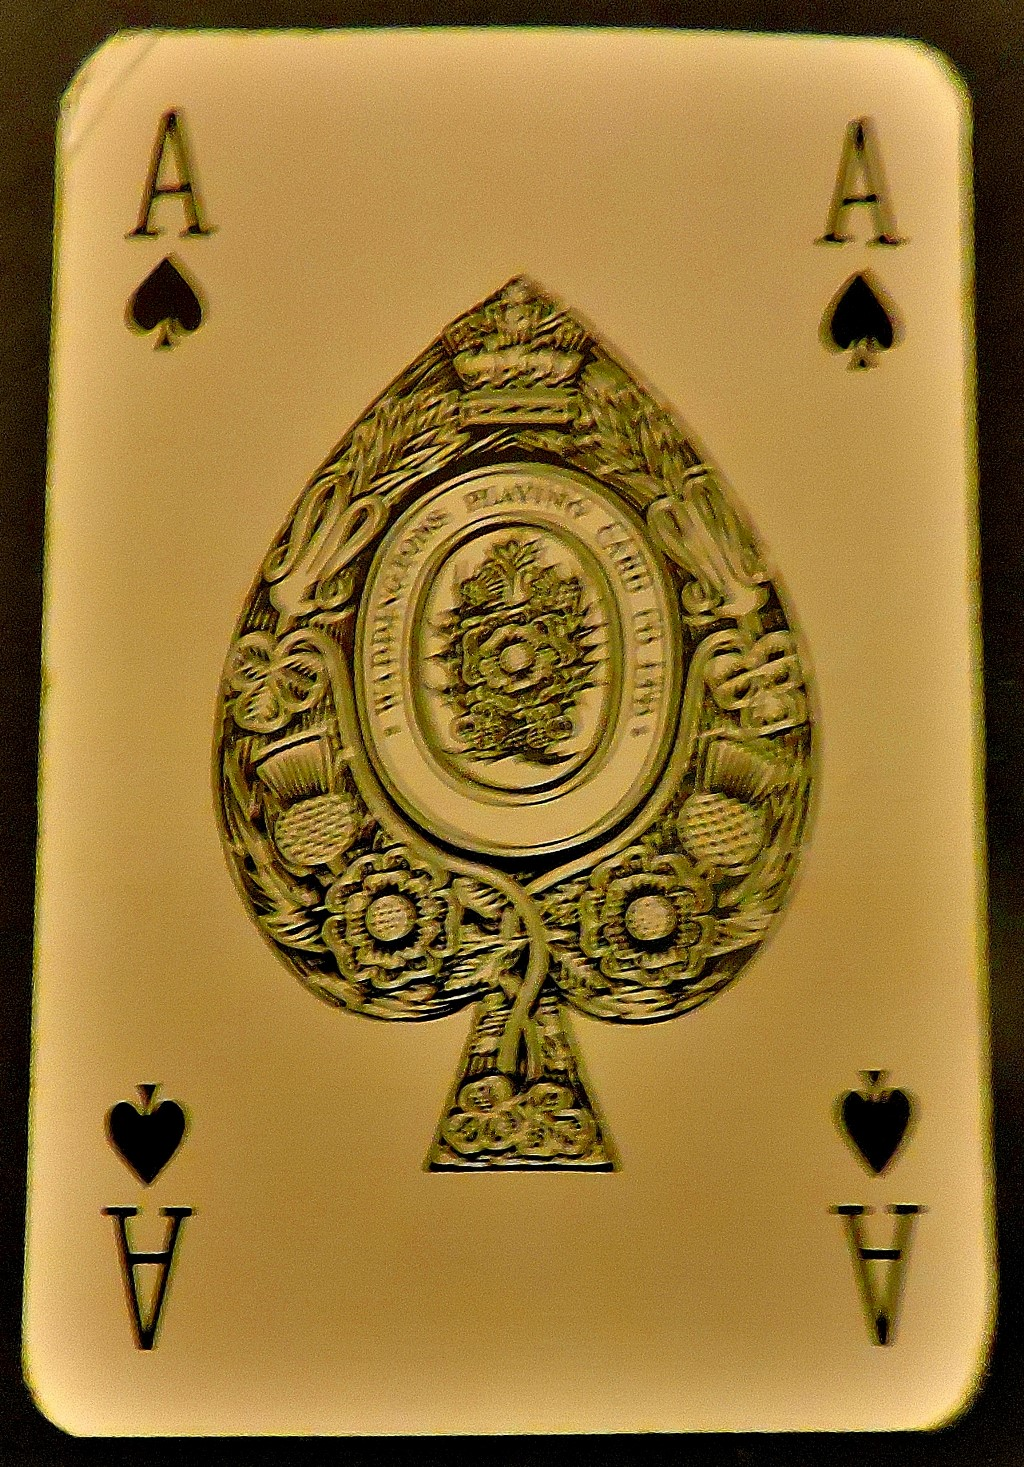 The traditional English ace of spades - the reason for this fancy card is that back in the day playing cards were heavily taxed, and manufacturers were only allowed to make 51 of the playing cards, receiving the ace of spades to complete the deck once they had paid the tax.